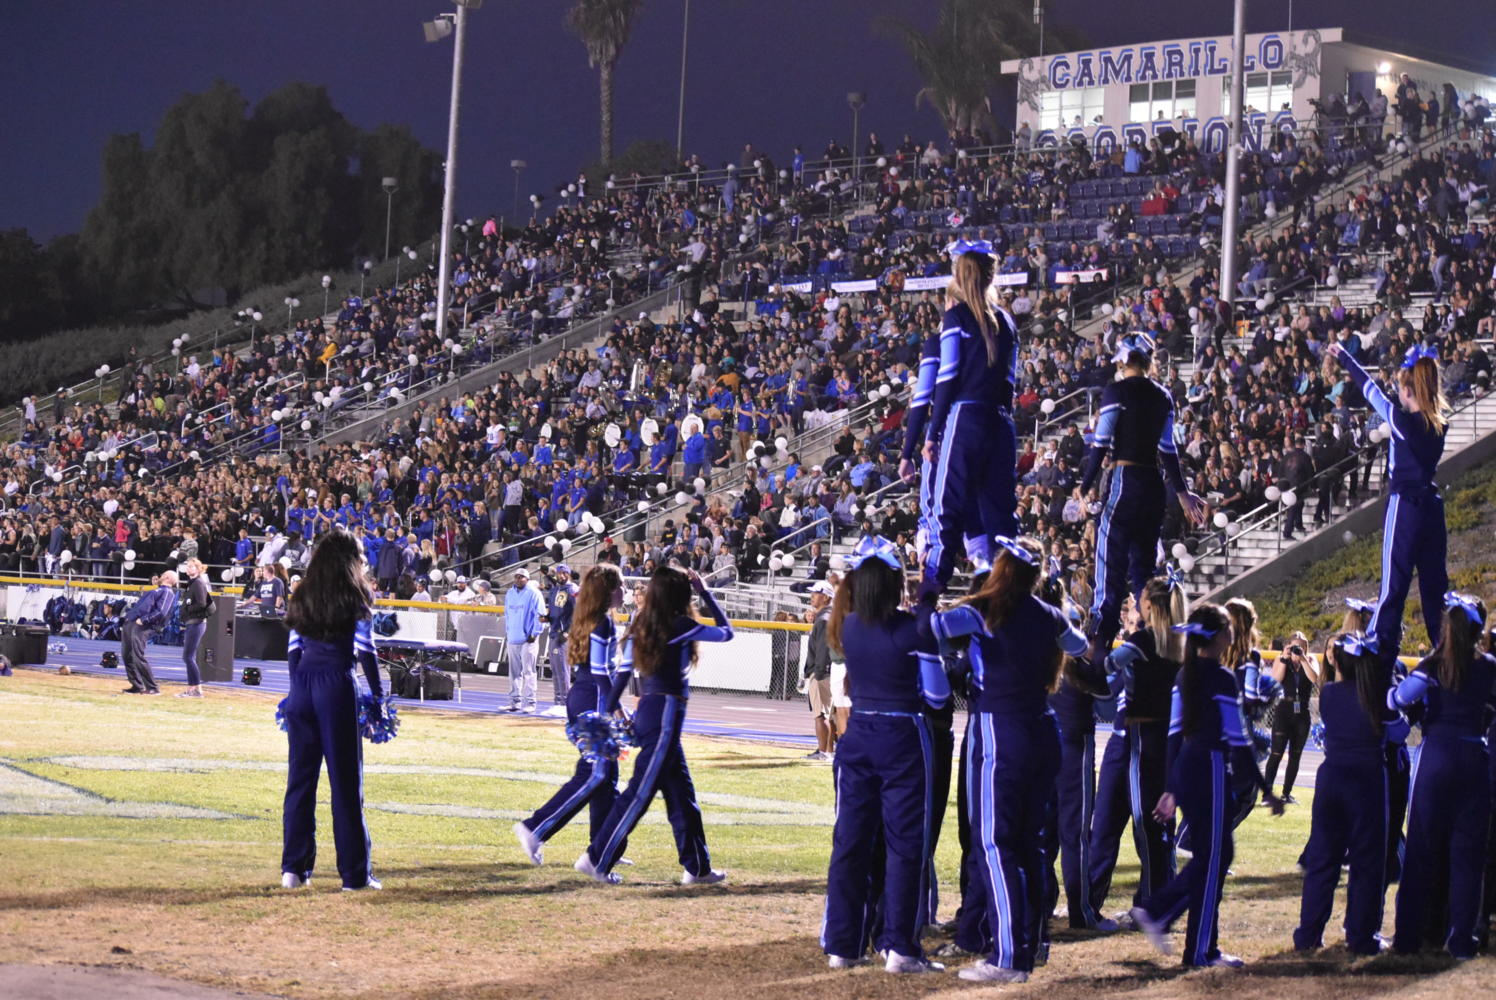 Cam High's cheer team stands proudly at the edge of the endzone to celebrate a touchdown.